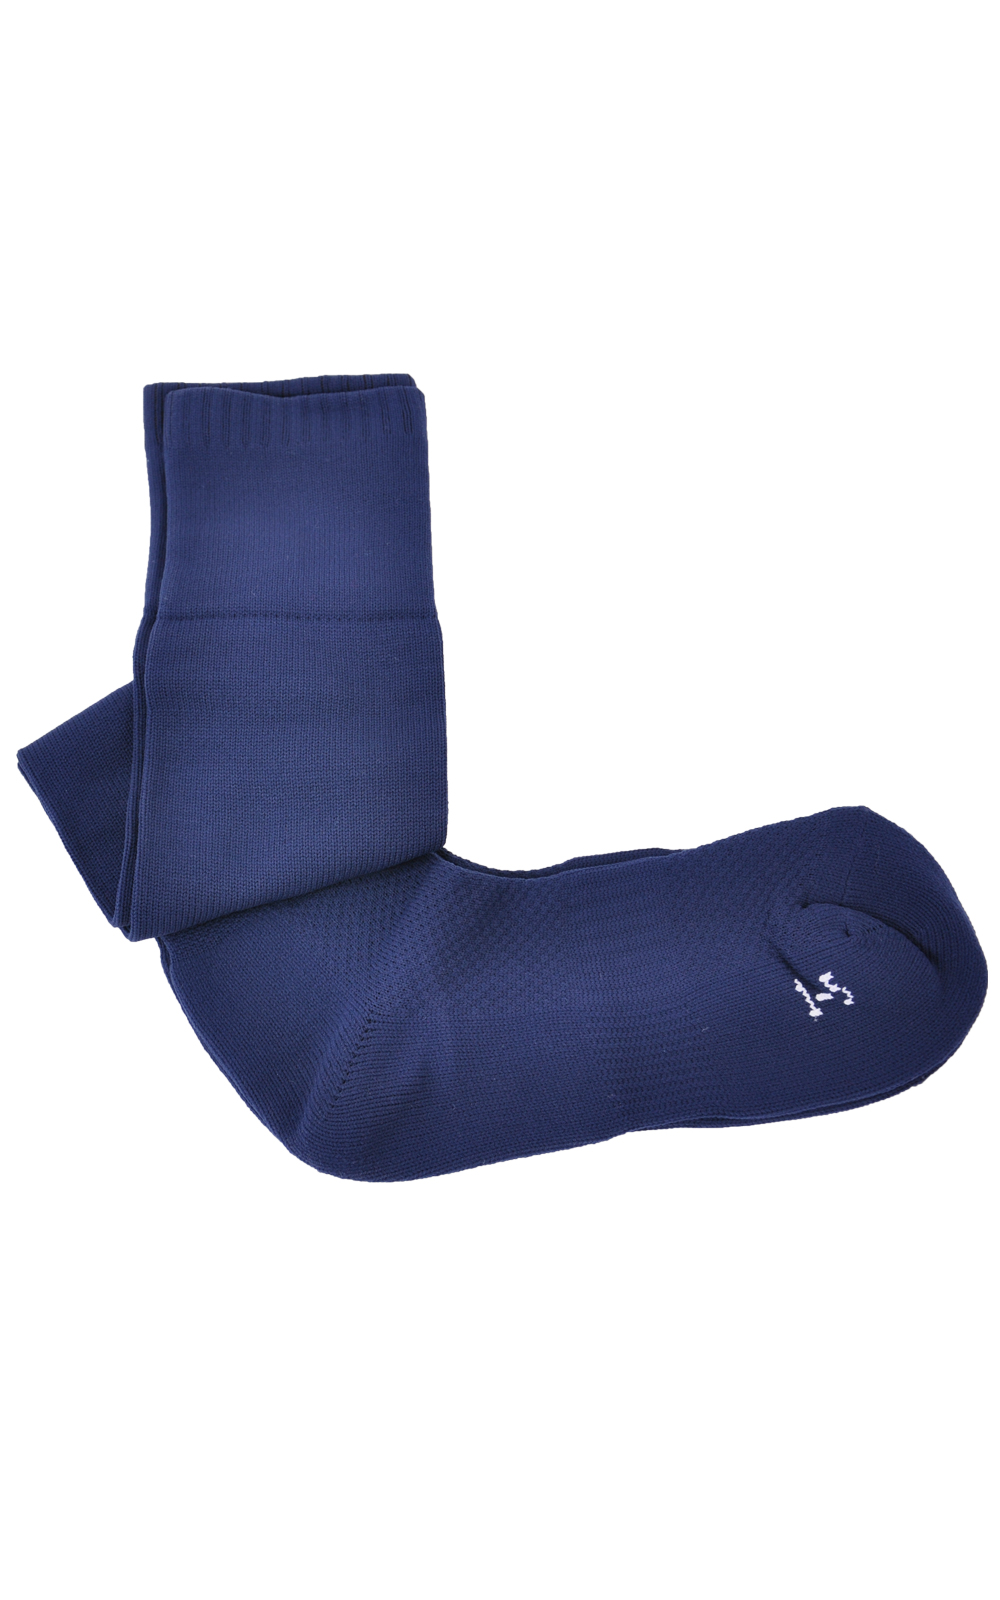 Picture of Plain Navy Sports Socks - Blue Max